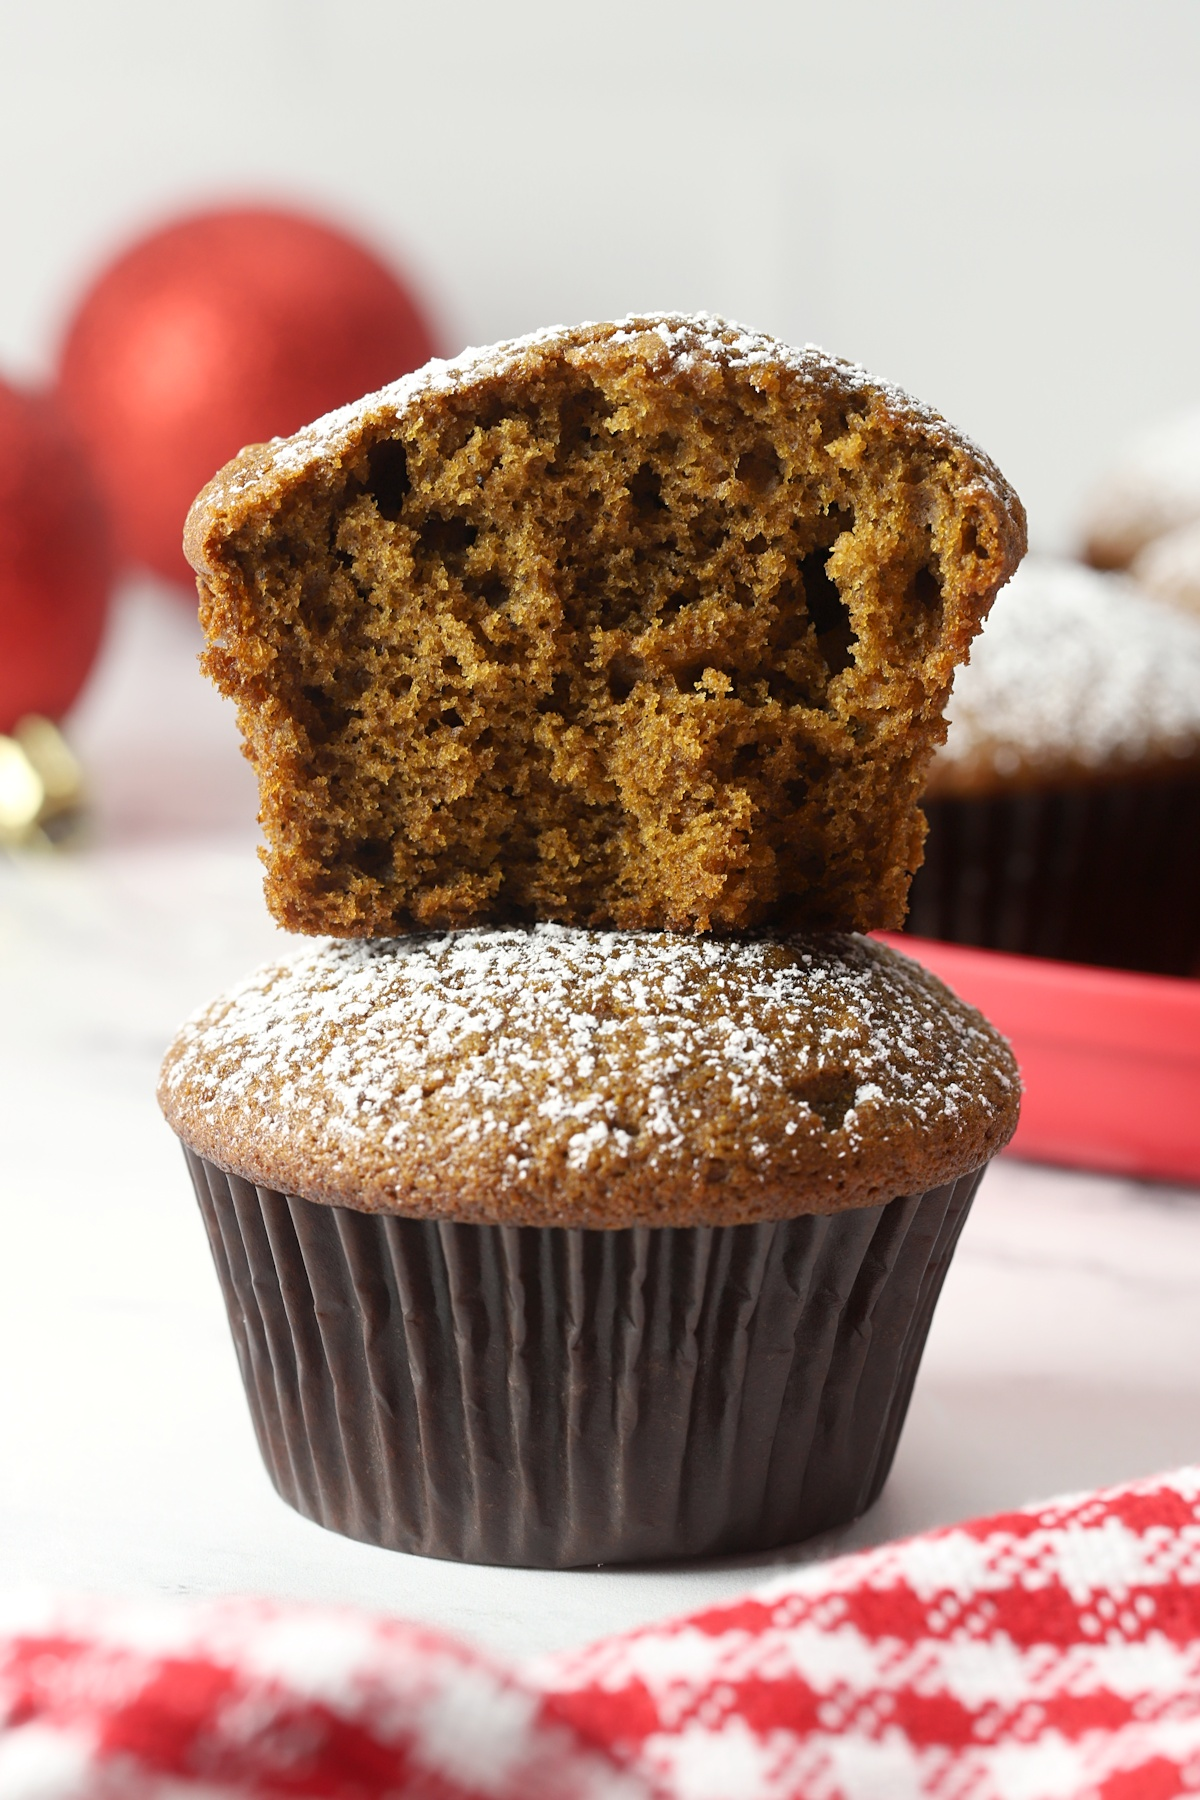 Muffins stacked on top of each other.